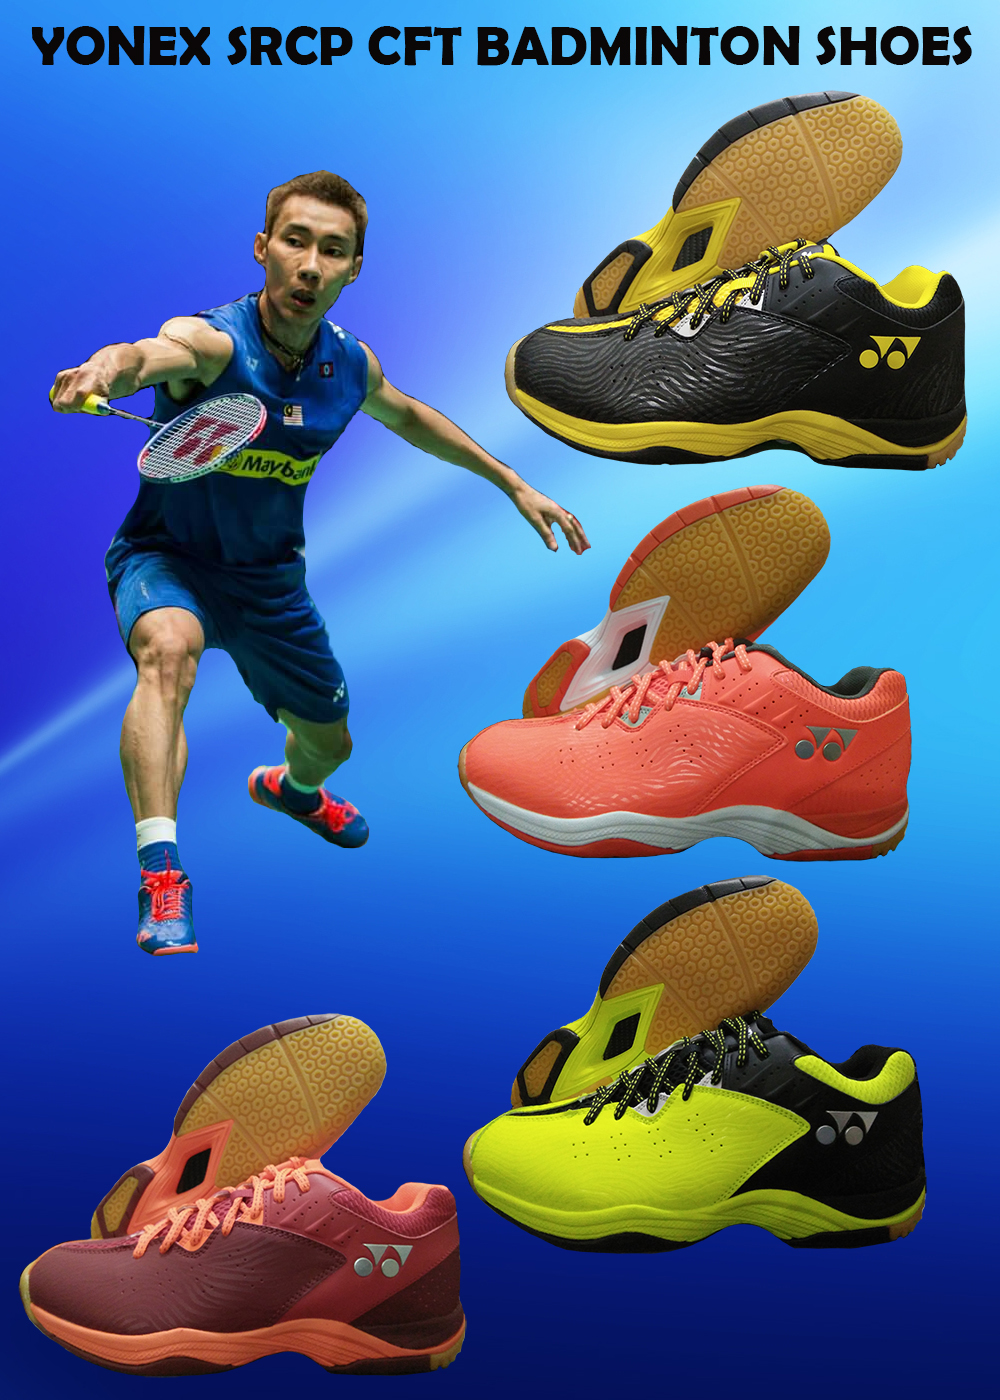 YONEX SRCP CFT ALL SHOES IMAGES